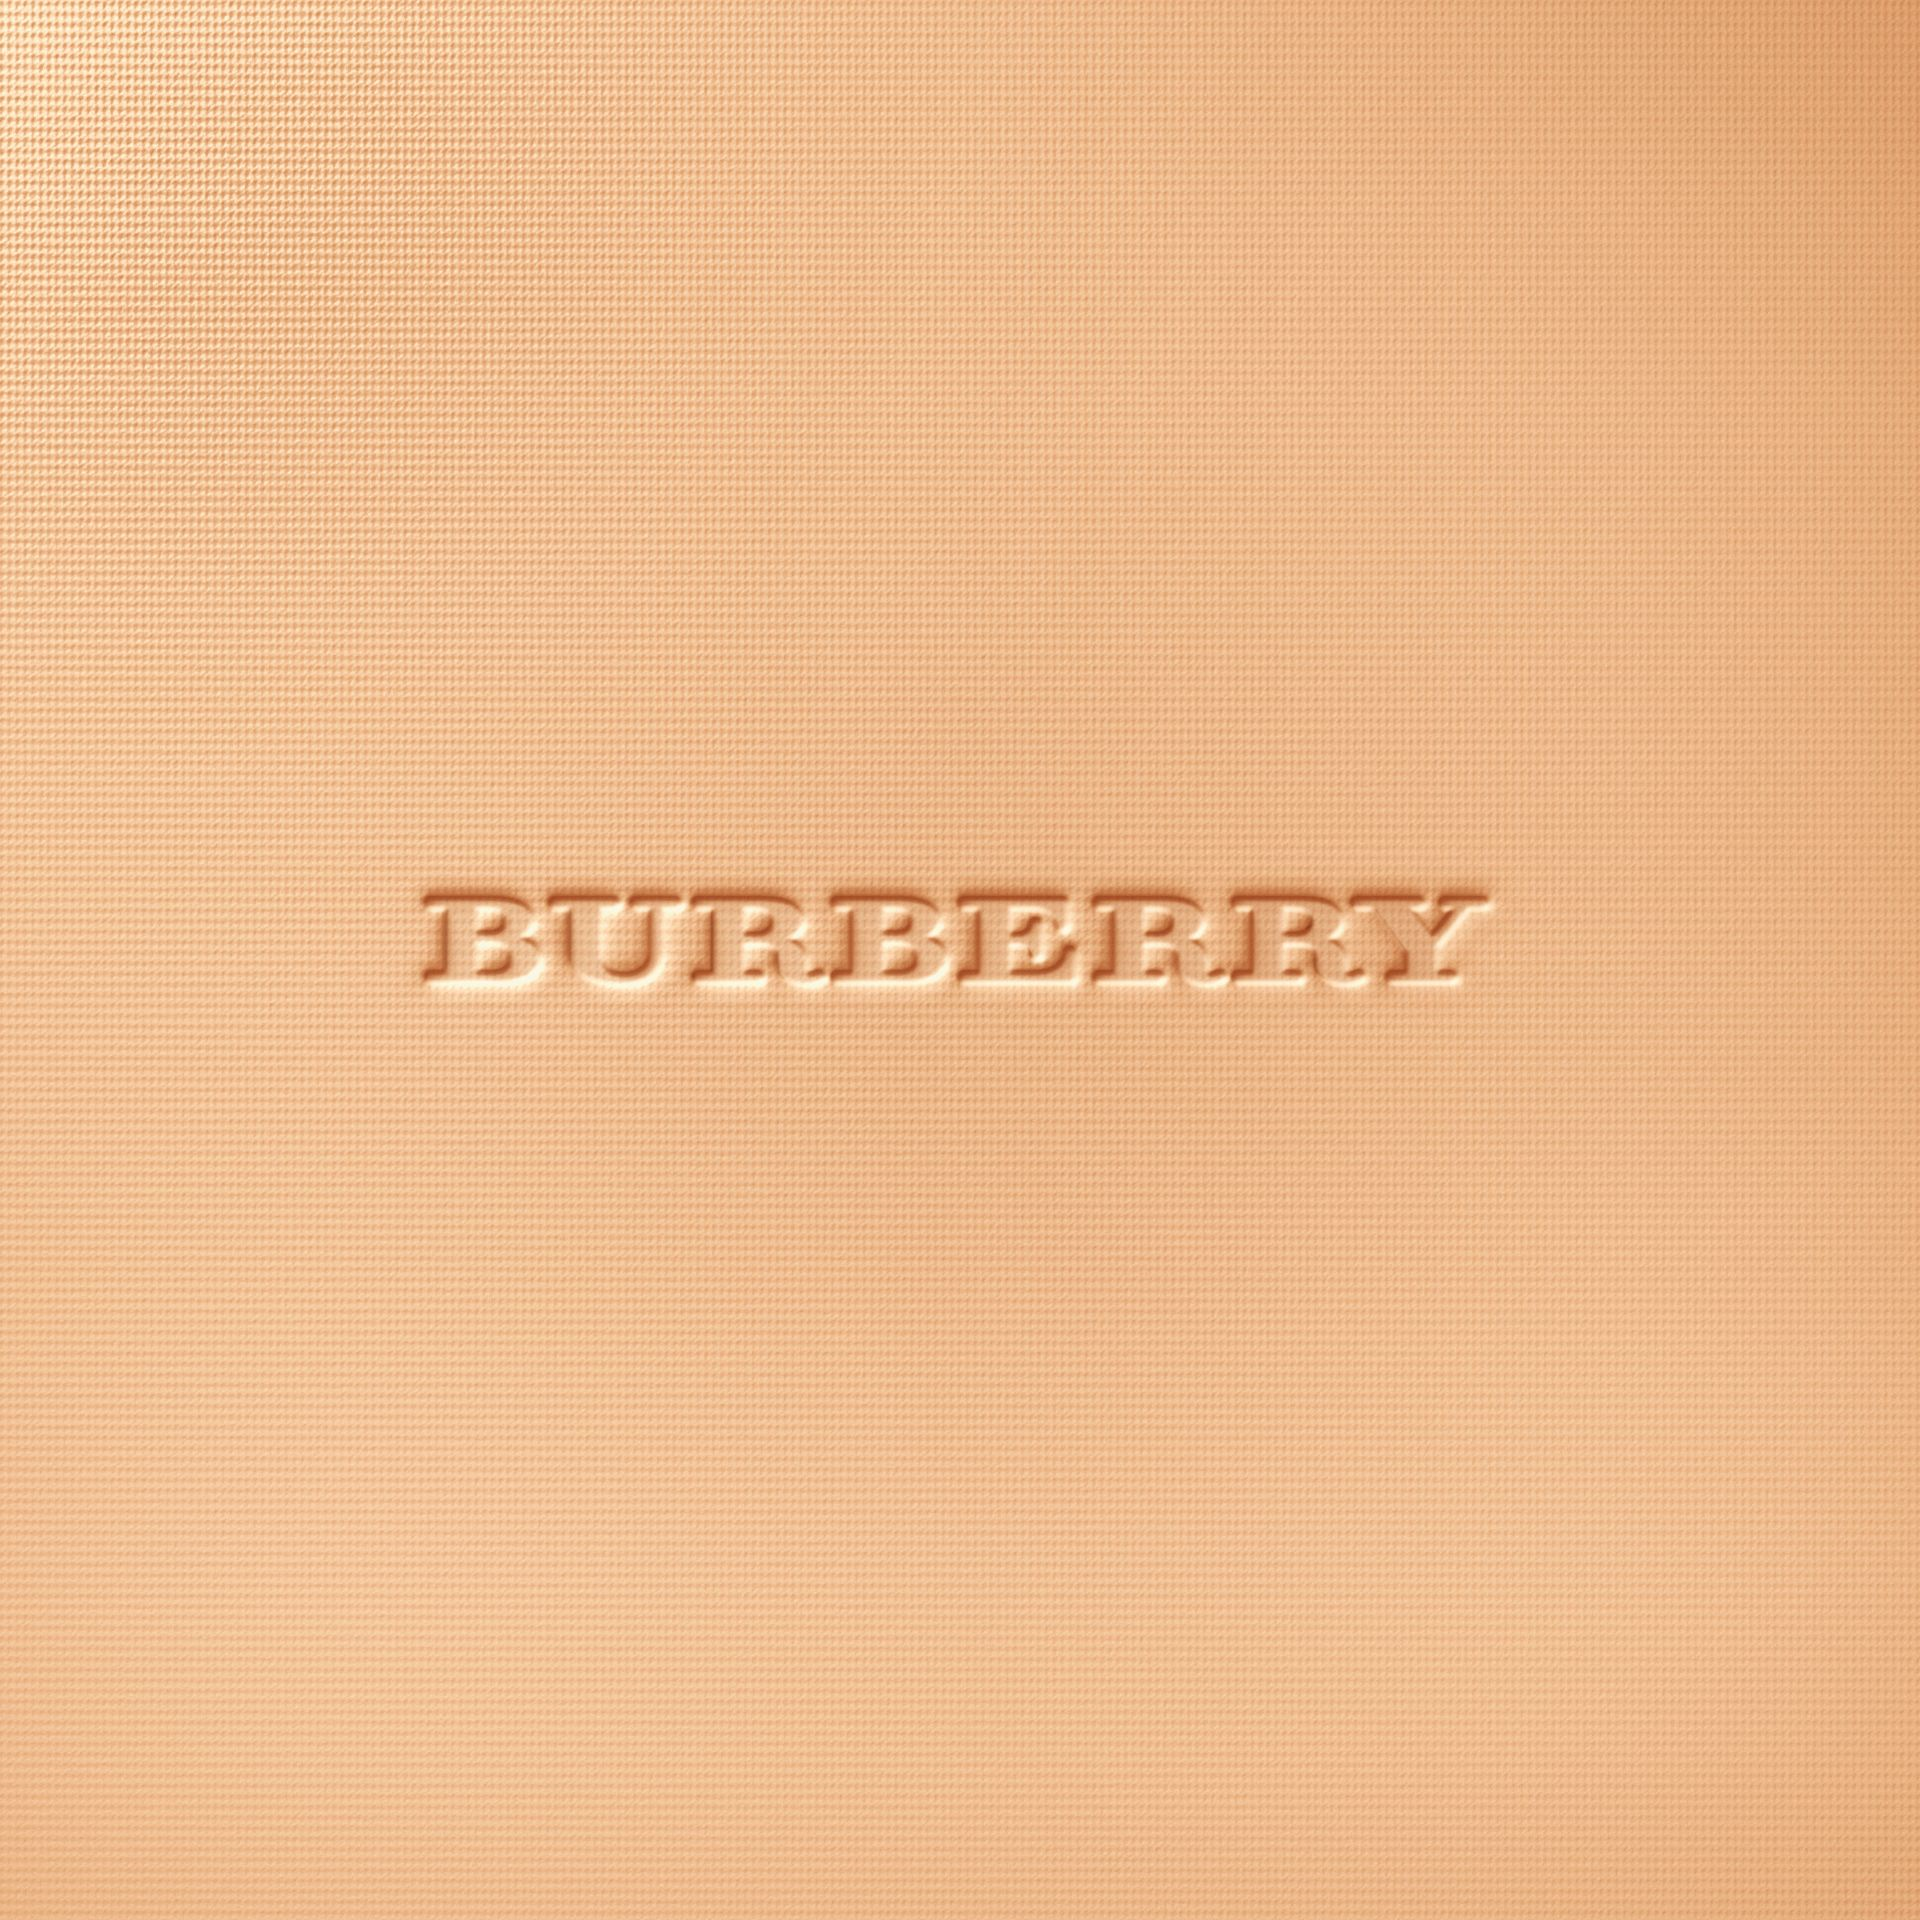 Light honey 10 Burberry Cashmere Compact - Light Honey No.10 - immagine della galleria 2